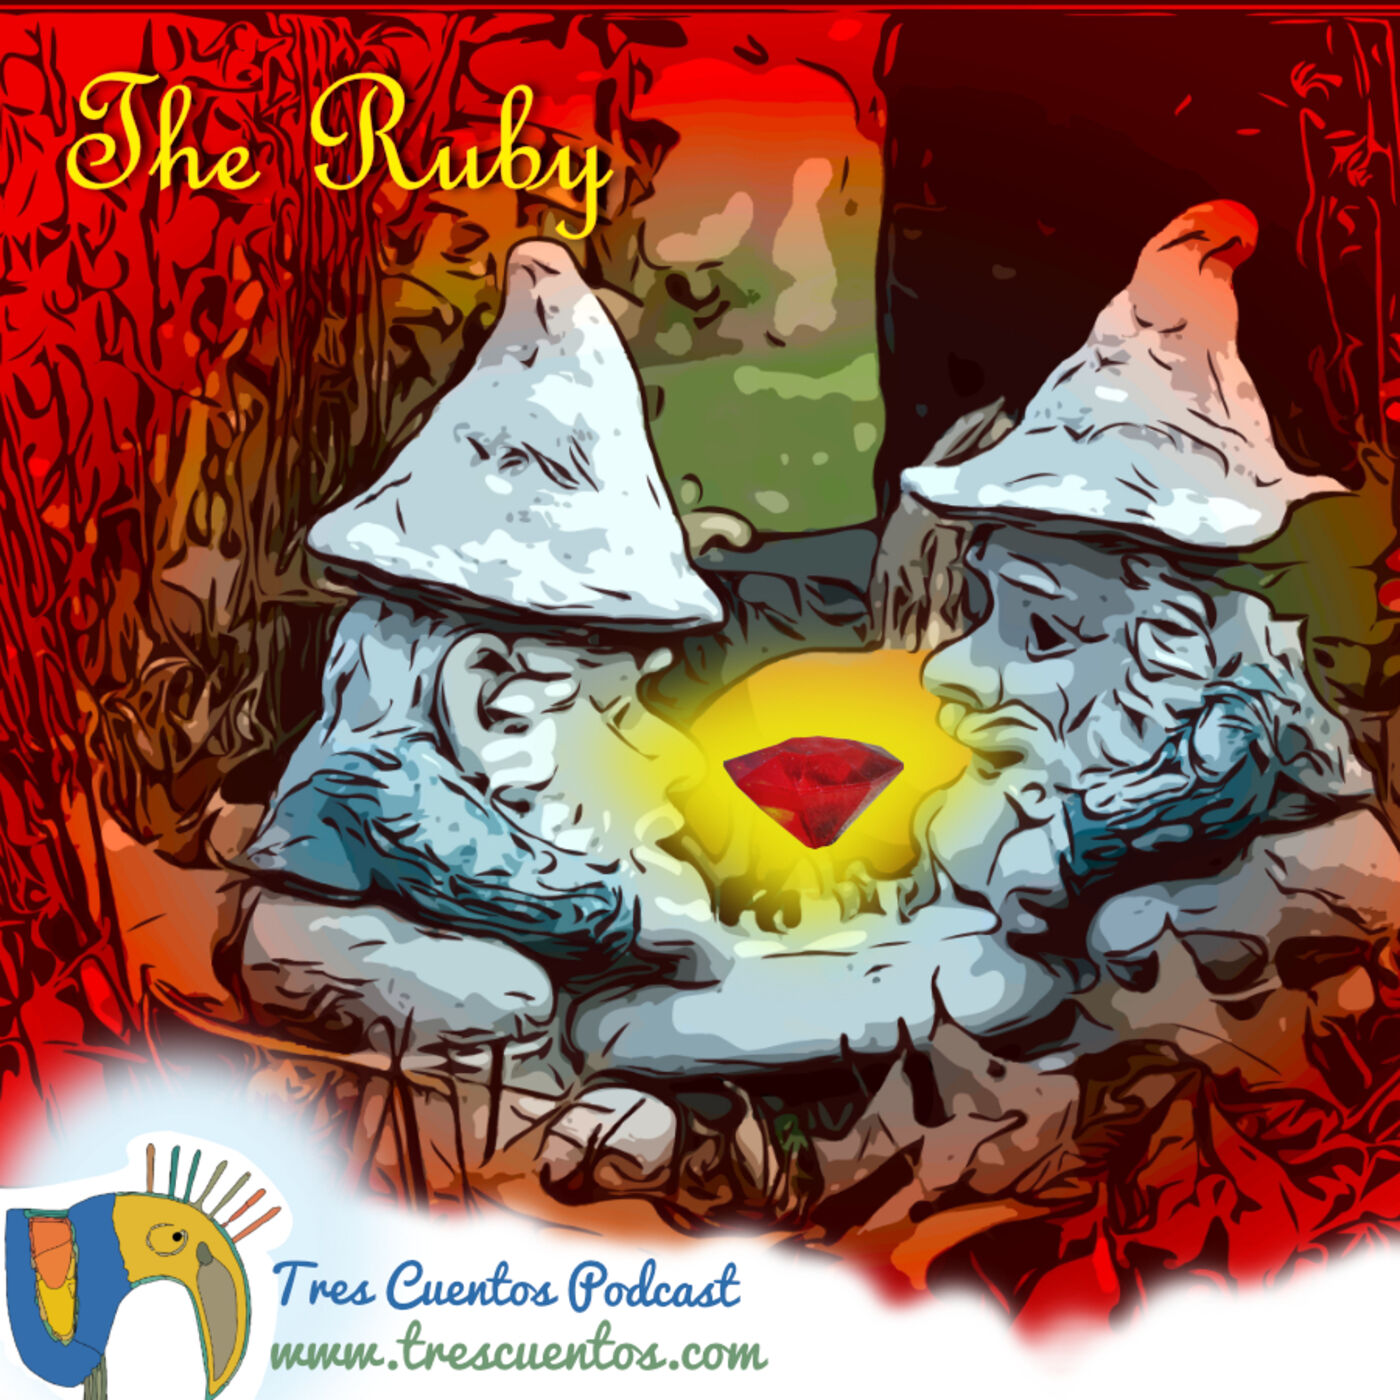 20- Latino Authors - The Ruby - Ruben Dario - Nicaragua/Central America